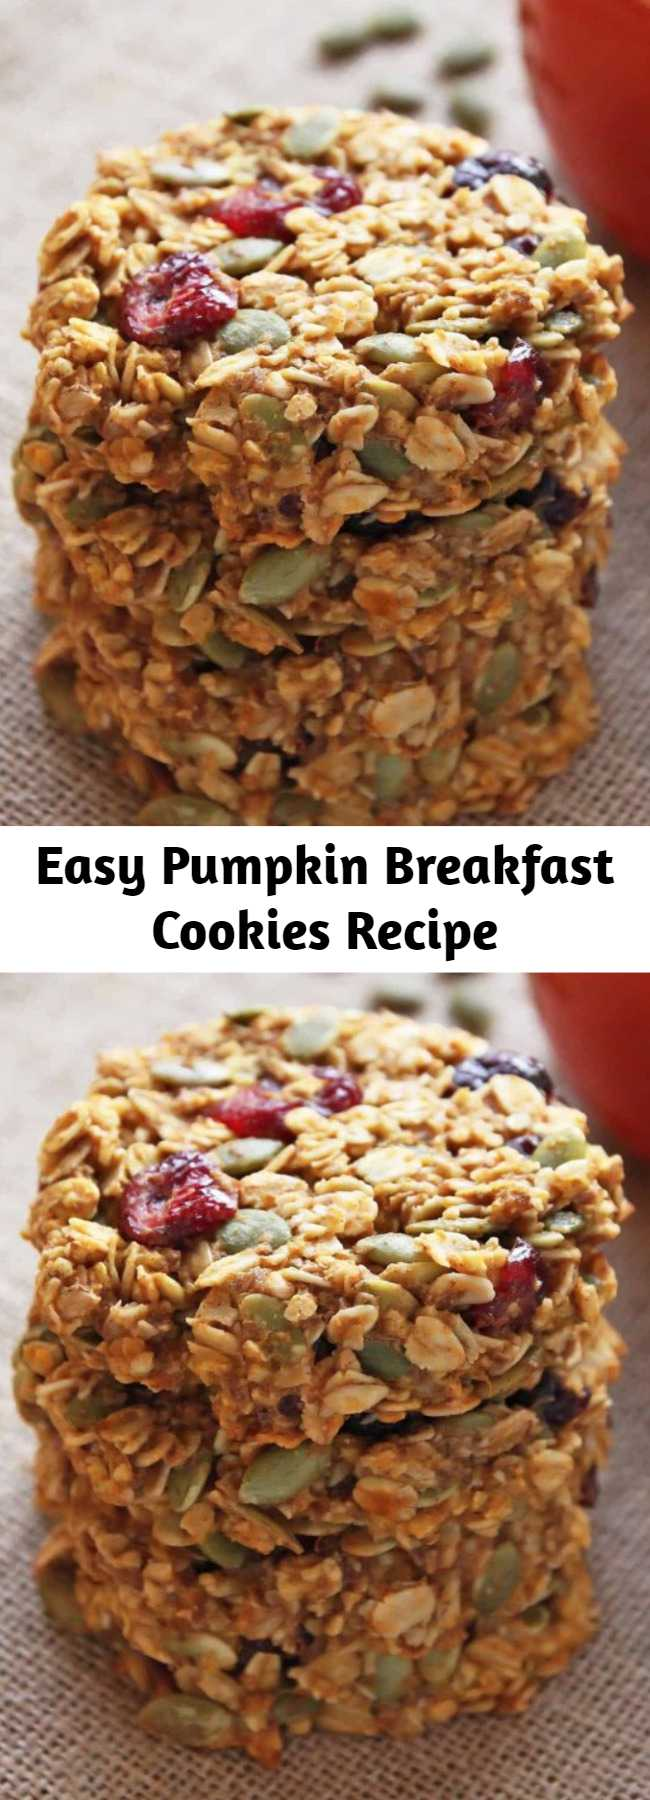 Easy Pumpkin Breakfast Cookies Recipe - These healthy Pumpkin Breakfast Cookies make a nutritious and grab-and-go breakfast that tastes like fall! This gluten-free and clean eating breakfast treat is made with wholegrain oats, cranberries, pumpkin seeds and honey.